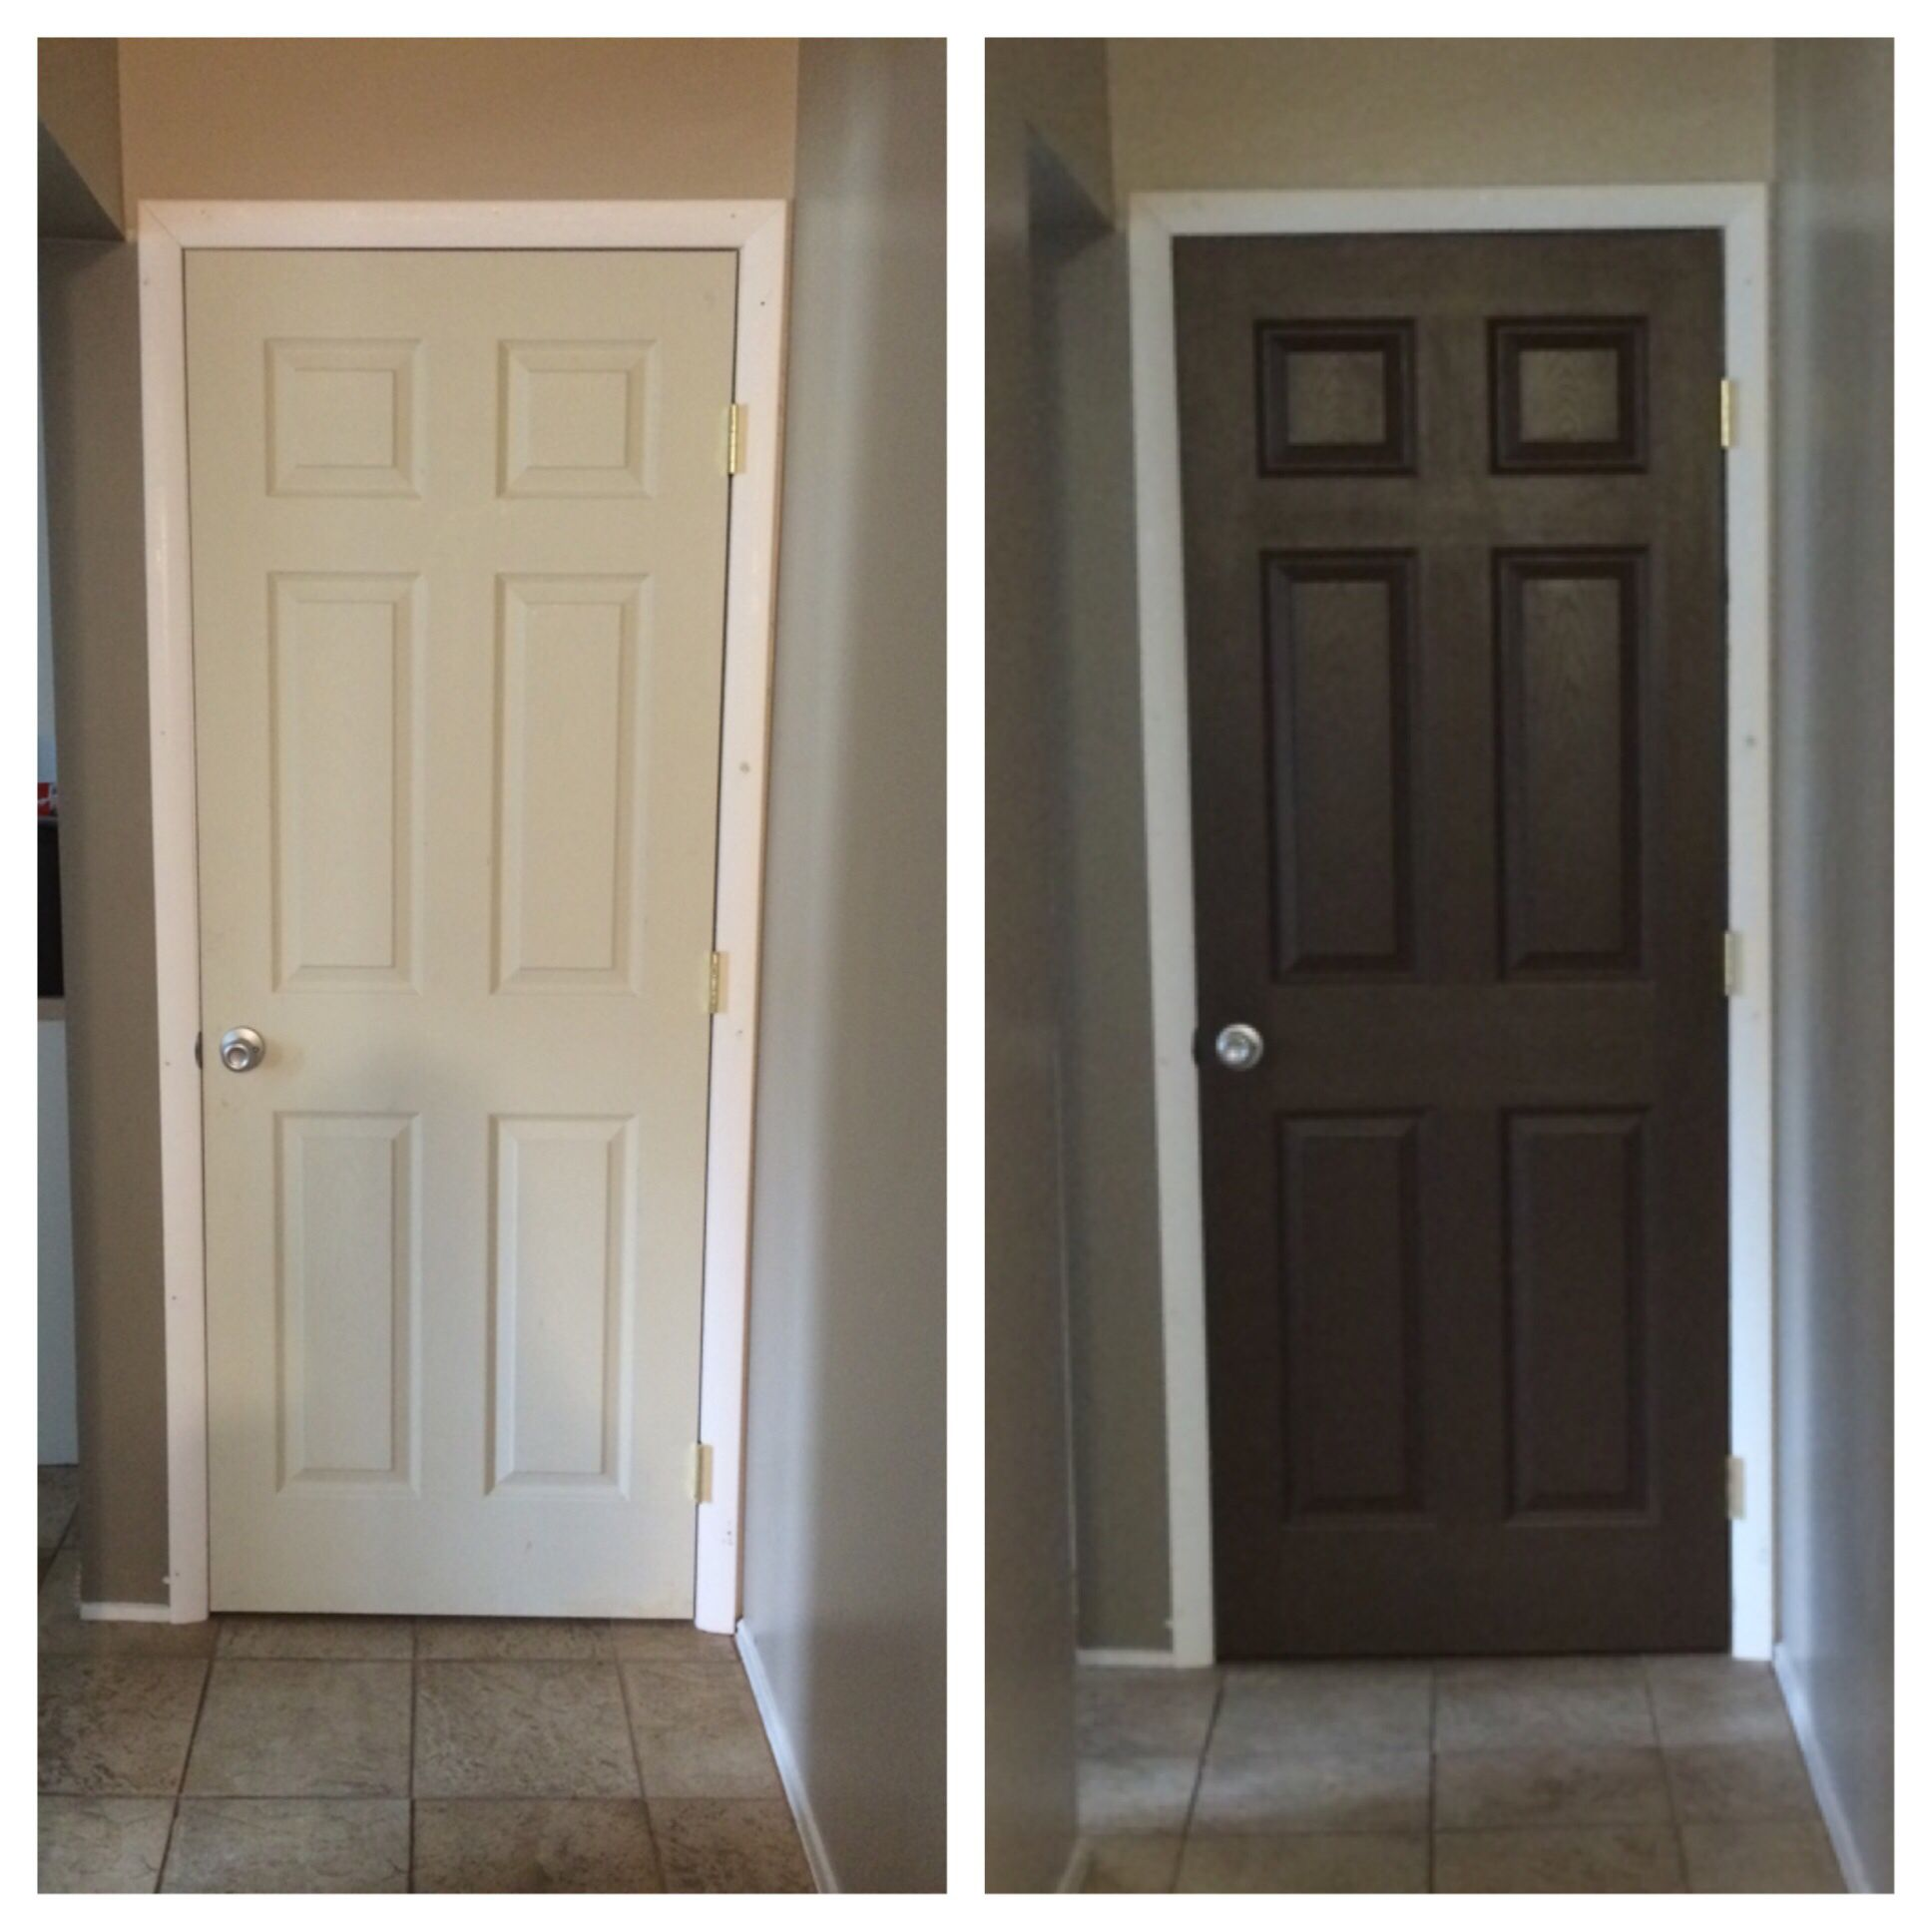 Pantry before after sherwin williams black bean our for Exterior door paint